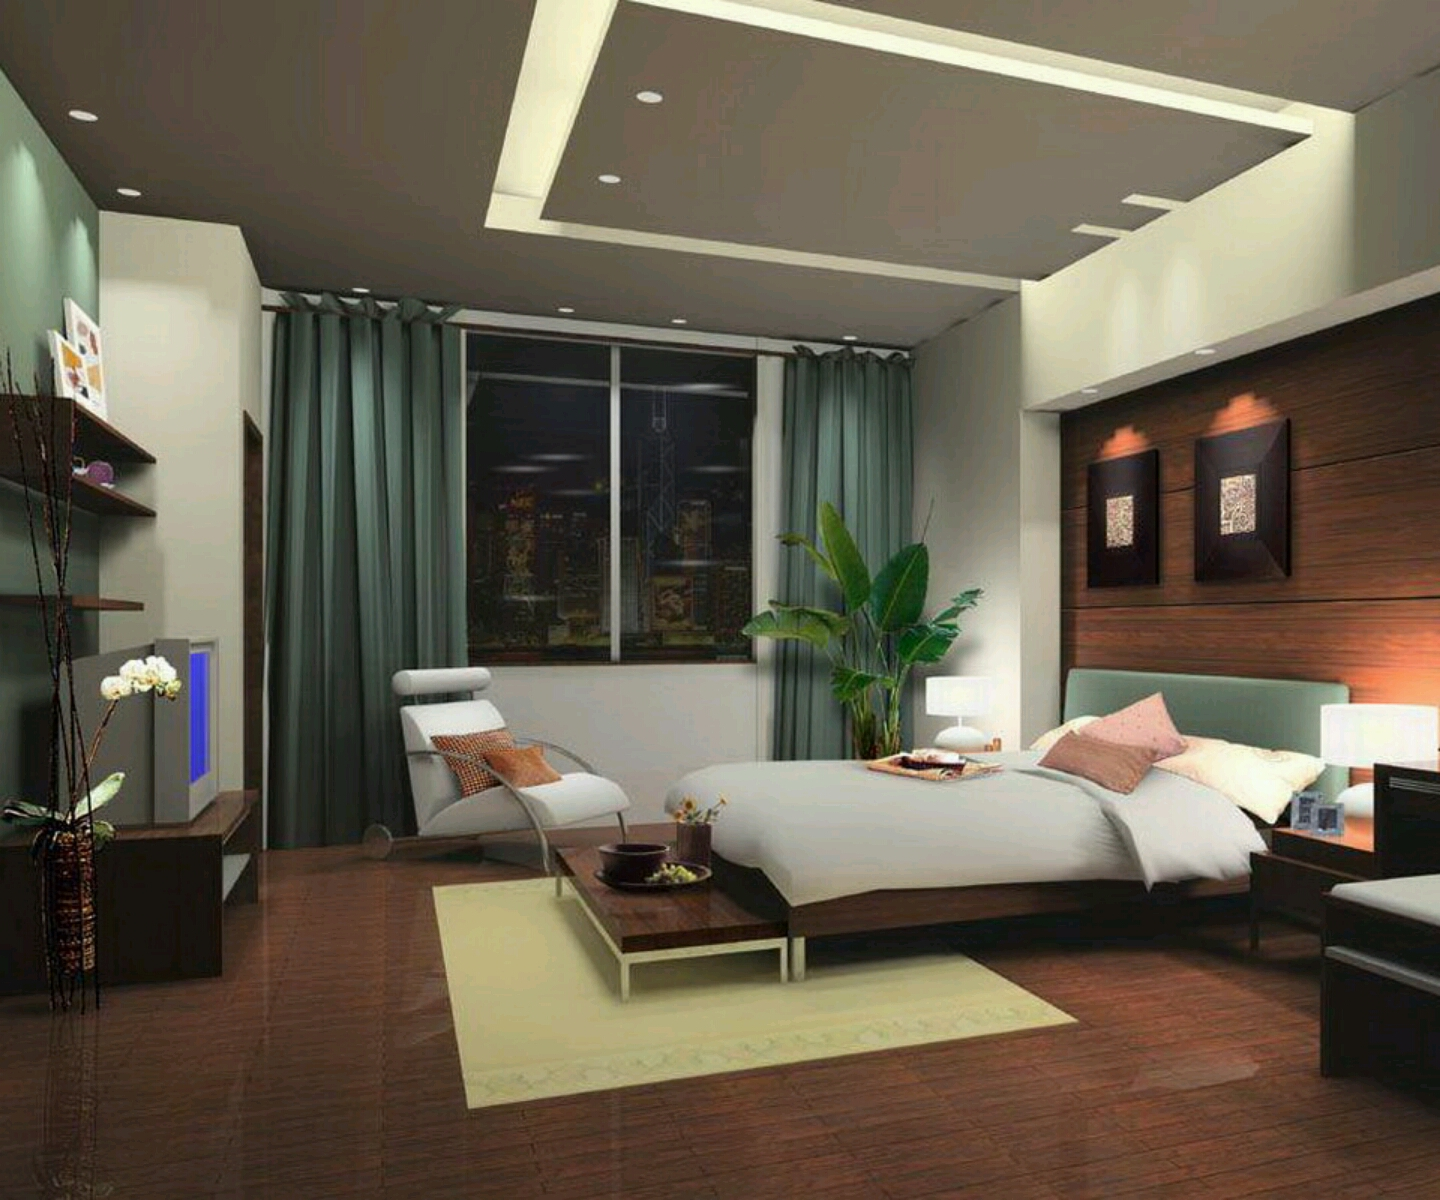 New home designs latest modern bedrooms designs best ideas for Bedroom style ideas